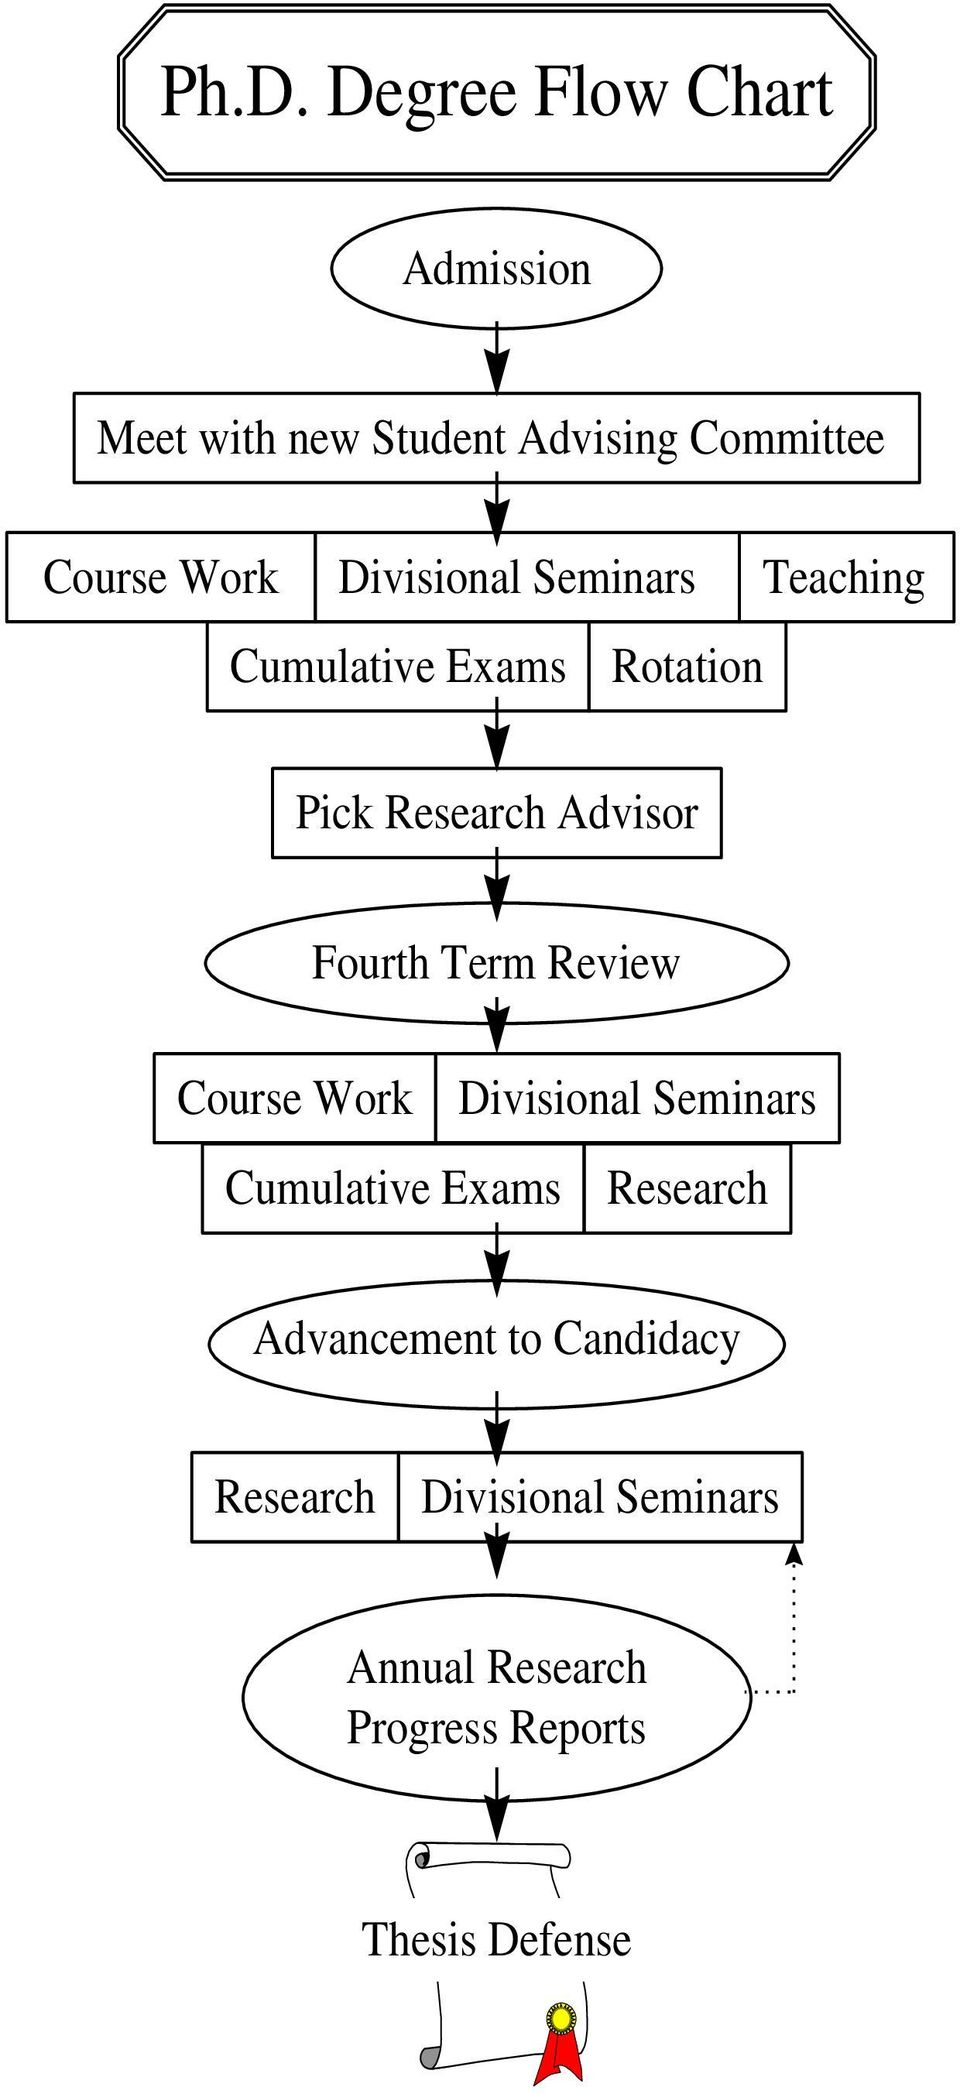 Fourth Term Review Course Work Divisional Seminars Cumulative Exams Research